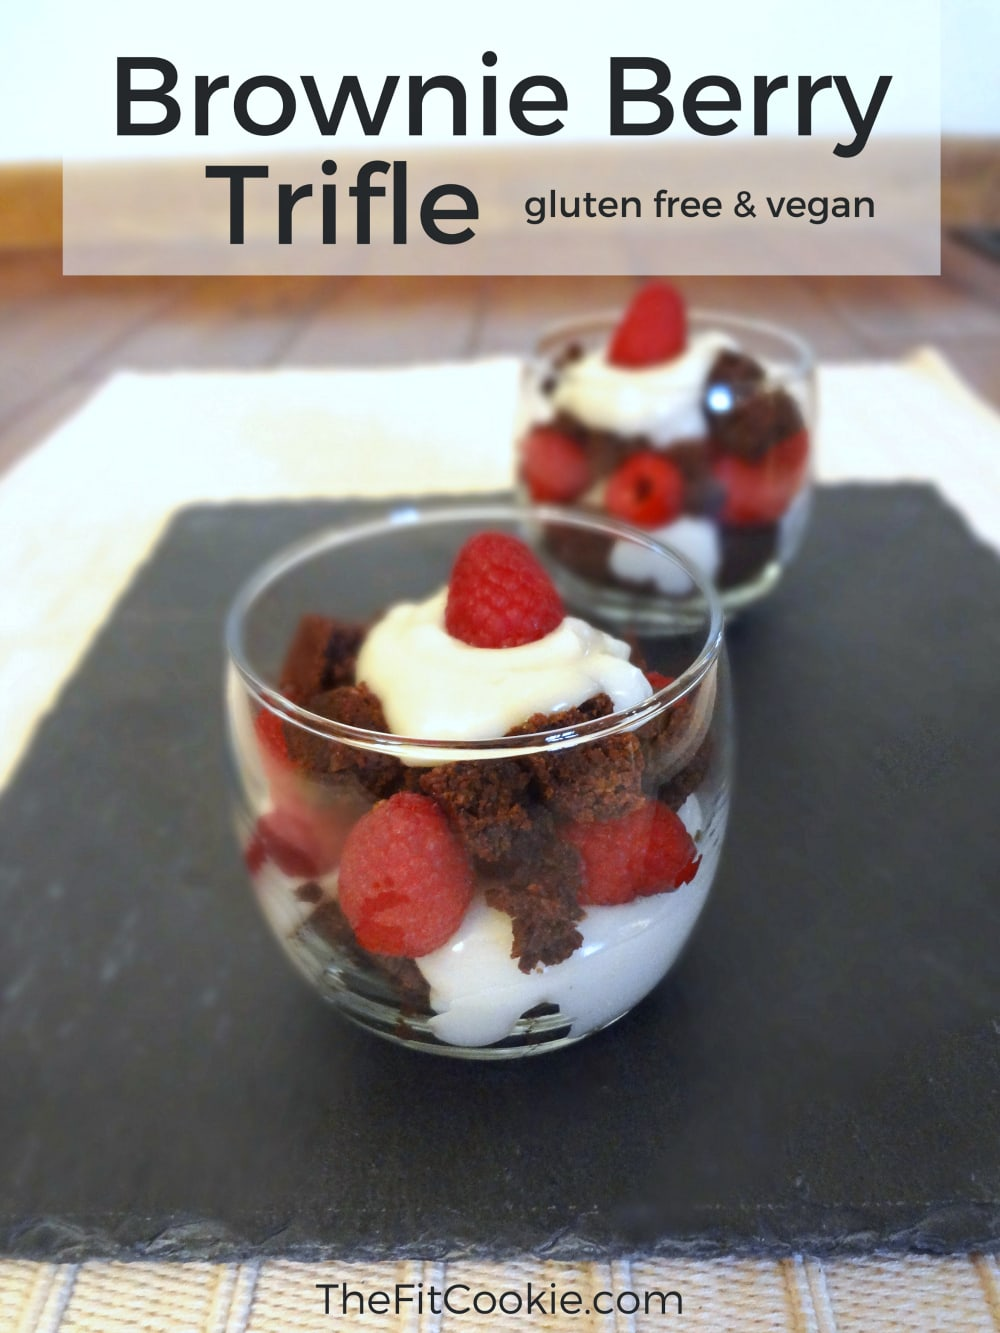 Brownie Berry Trifle {Recipe ReDux} - @TheFitCookie #glutenfree #reciperedux #vegan